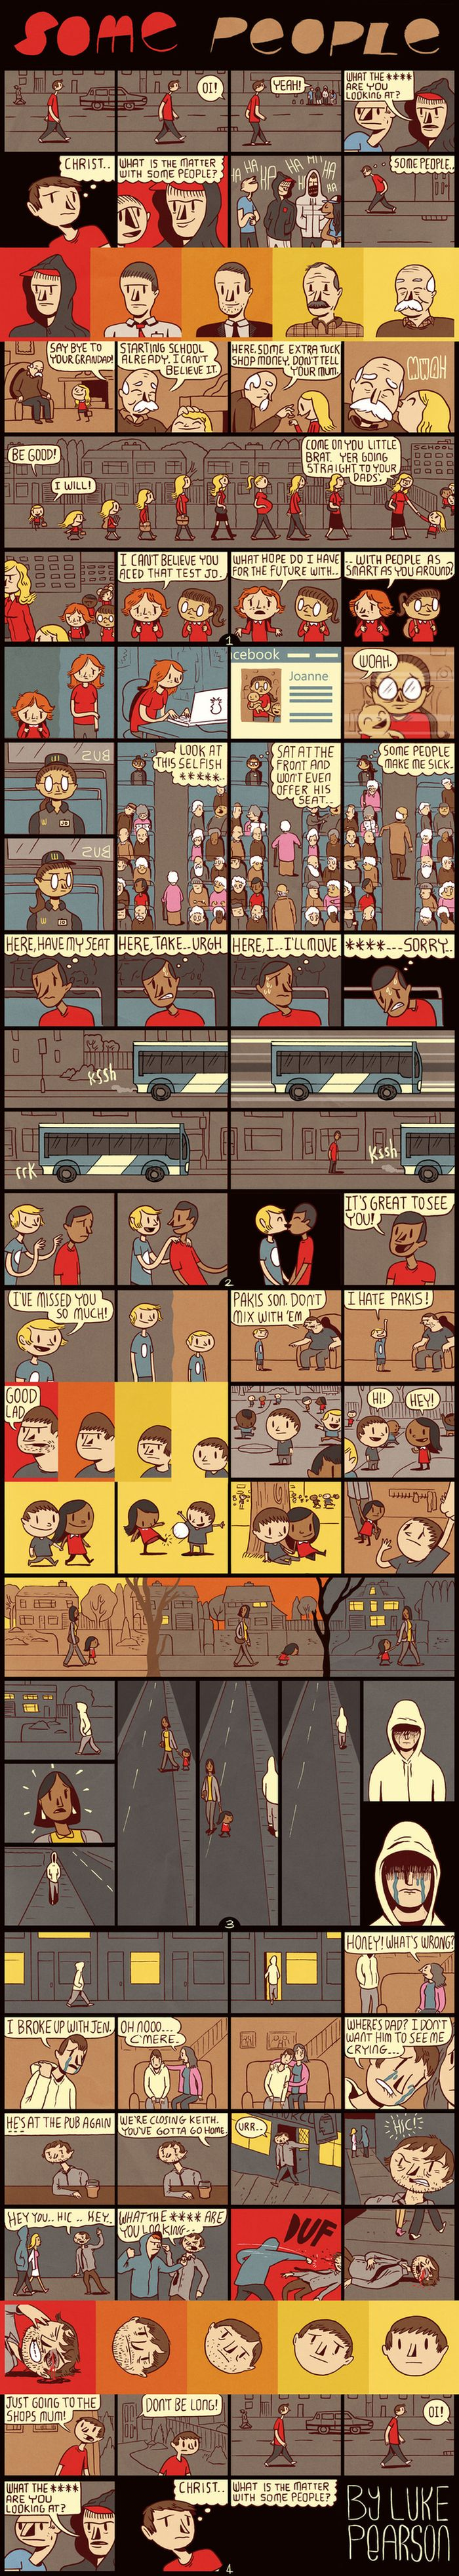 """Some People"" by Luke Pearson (1 pic)"